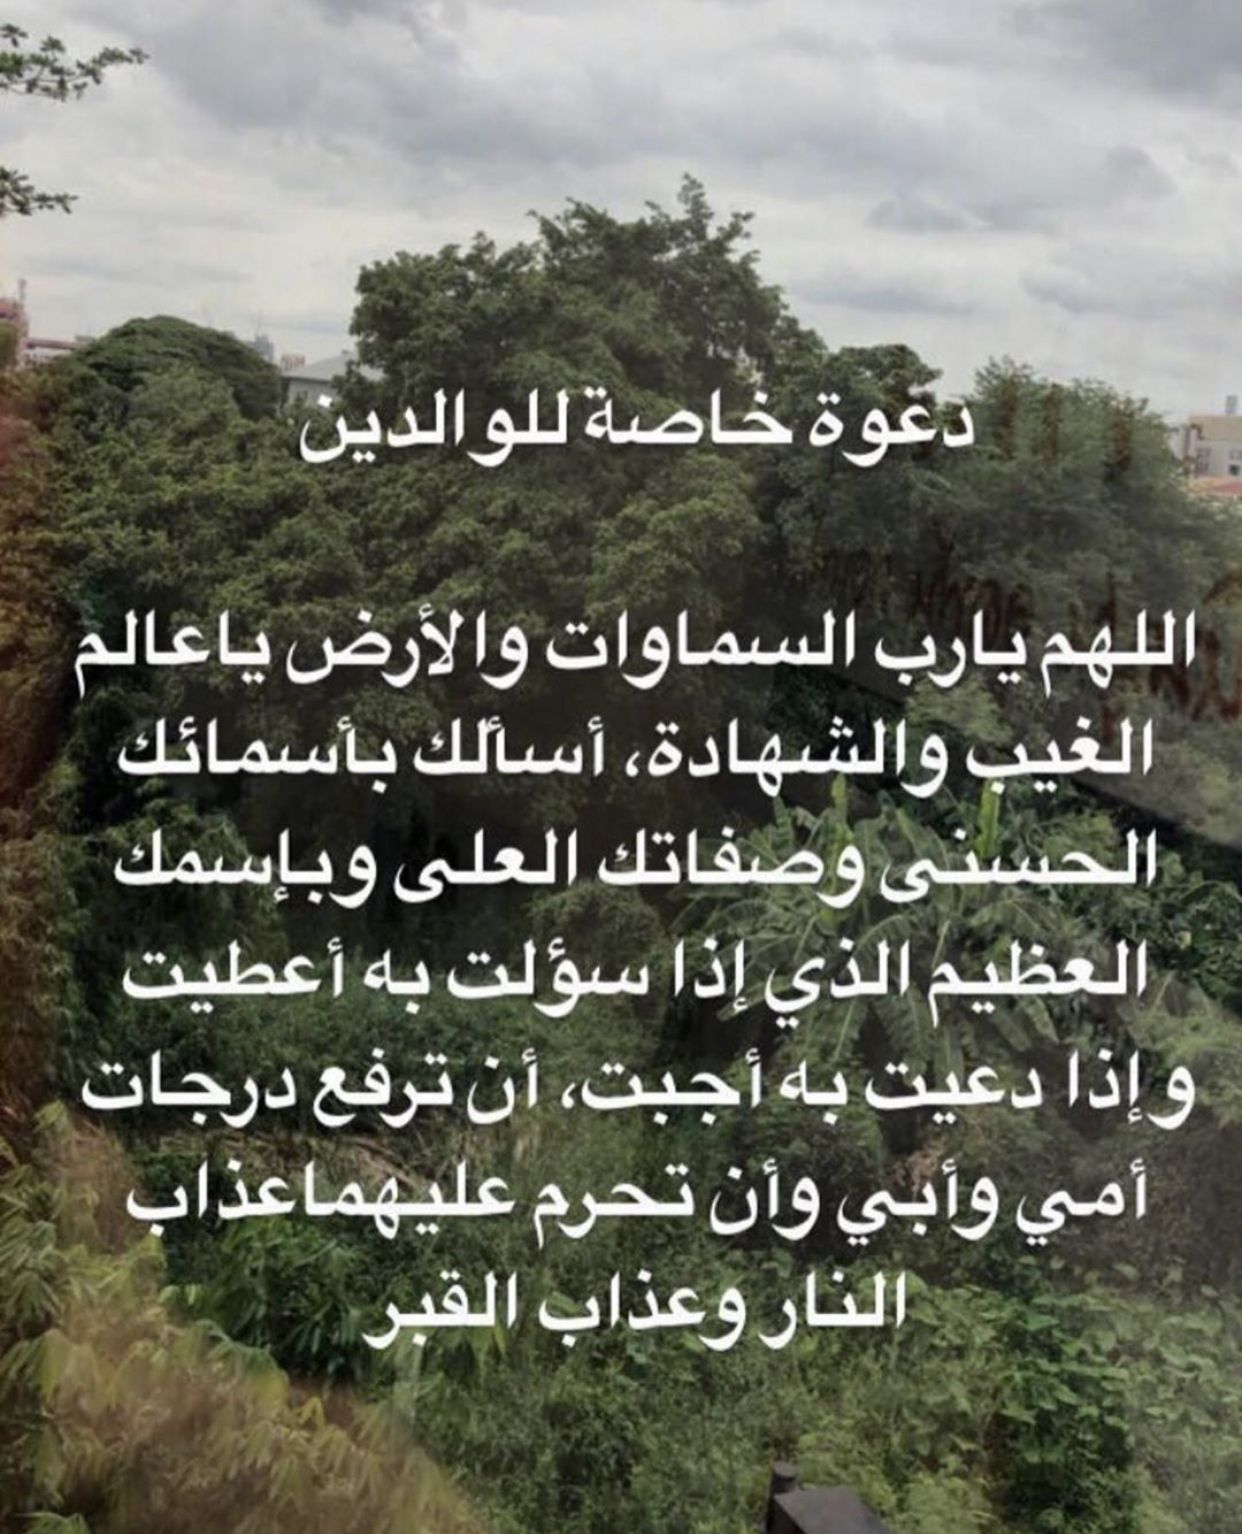 Pin By خليفه On اذكارات Good Morning Images Flowers Morning Images Good Morning Images